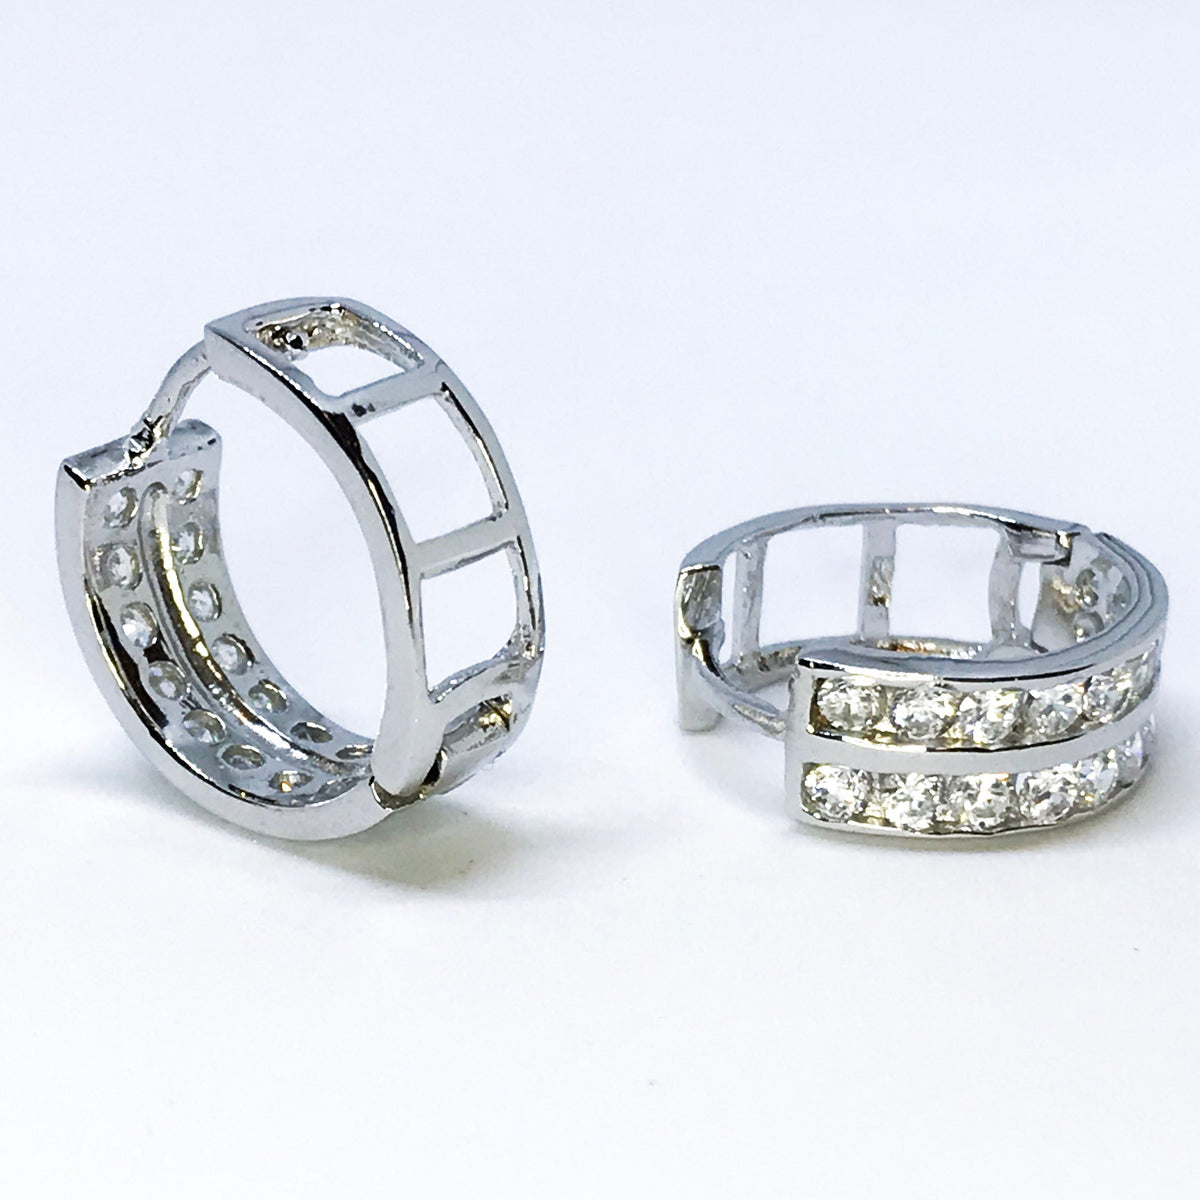 14K white gold on sterling silver hoop earrings - 3 Royal Dazzy